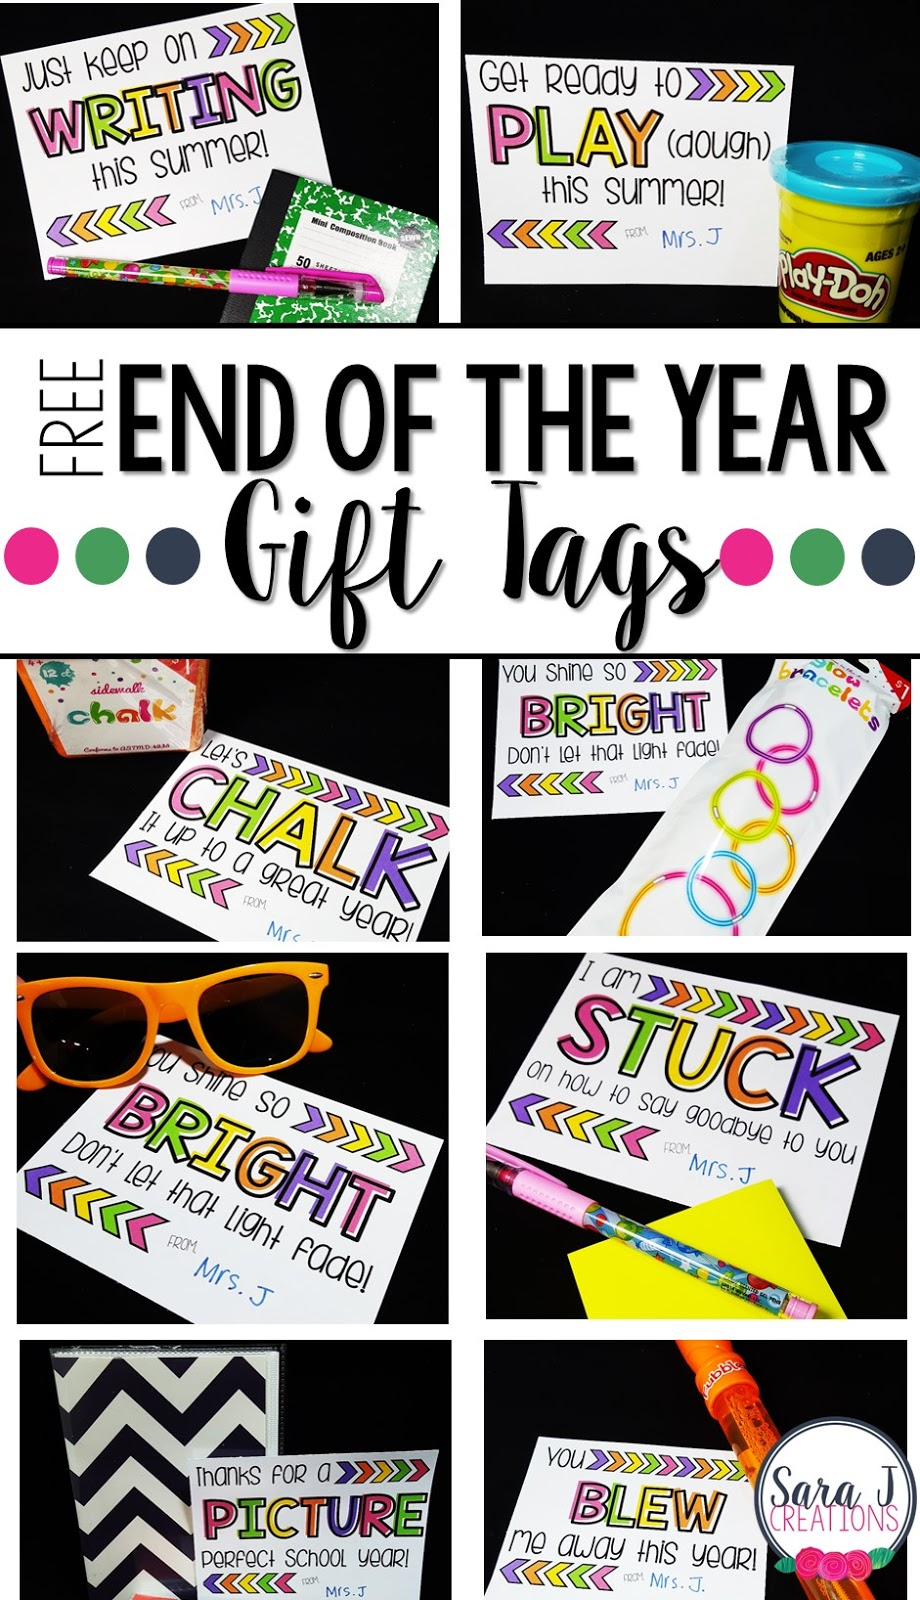 10 FREE Gift Tags for end of the school year student gifts and gift ideas that won't break the bank for the teacher.